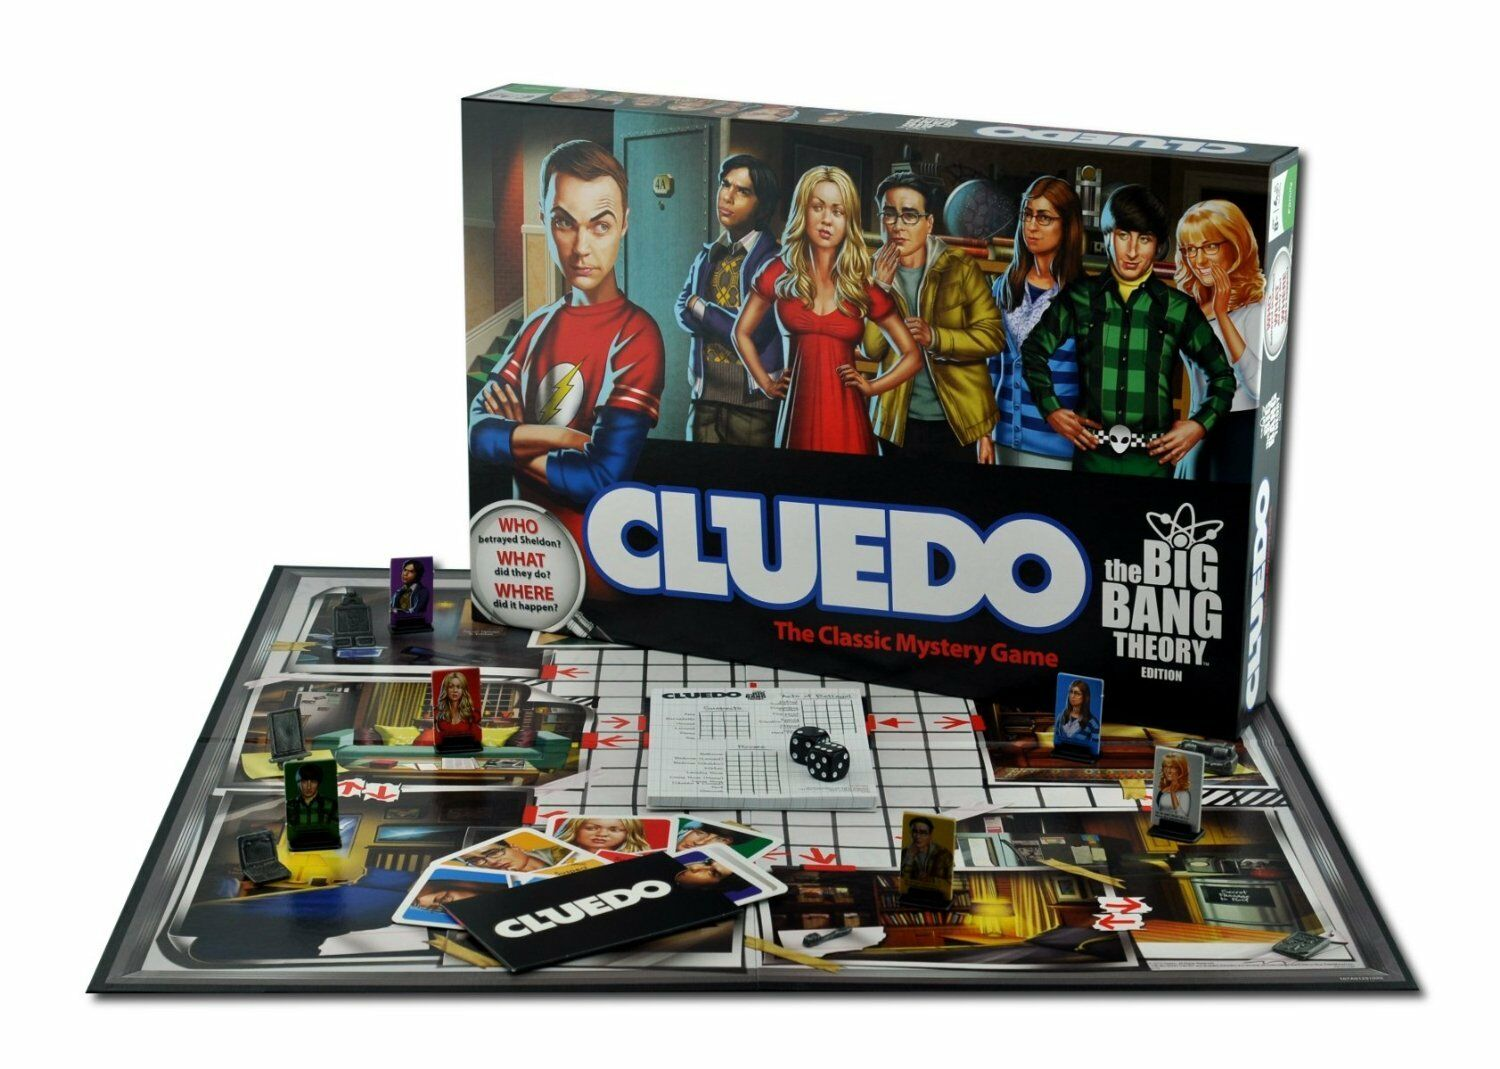 BRAND NEW CLUEDO BIG BANG THEORY BOARD GAME BASED ON THE HIT TV SHOW